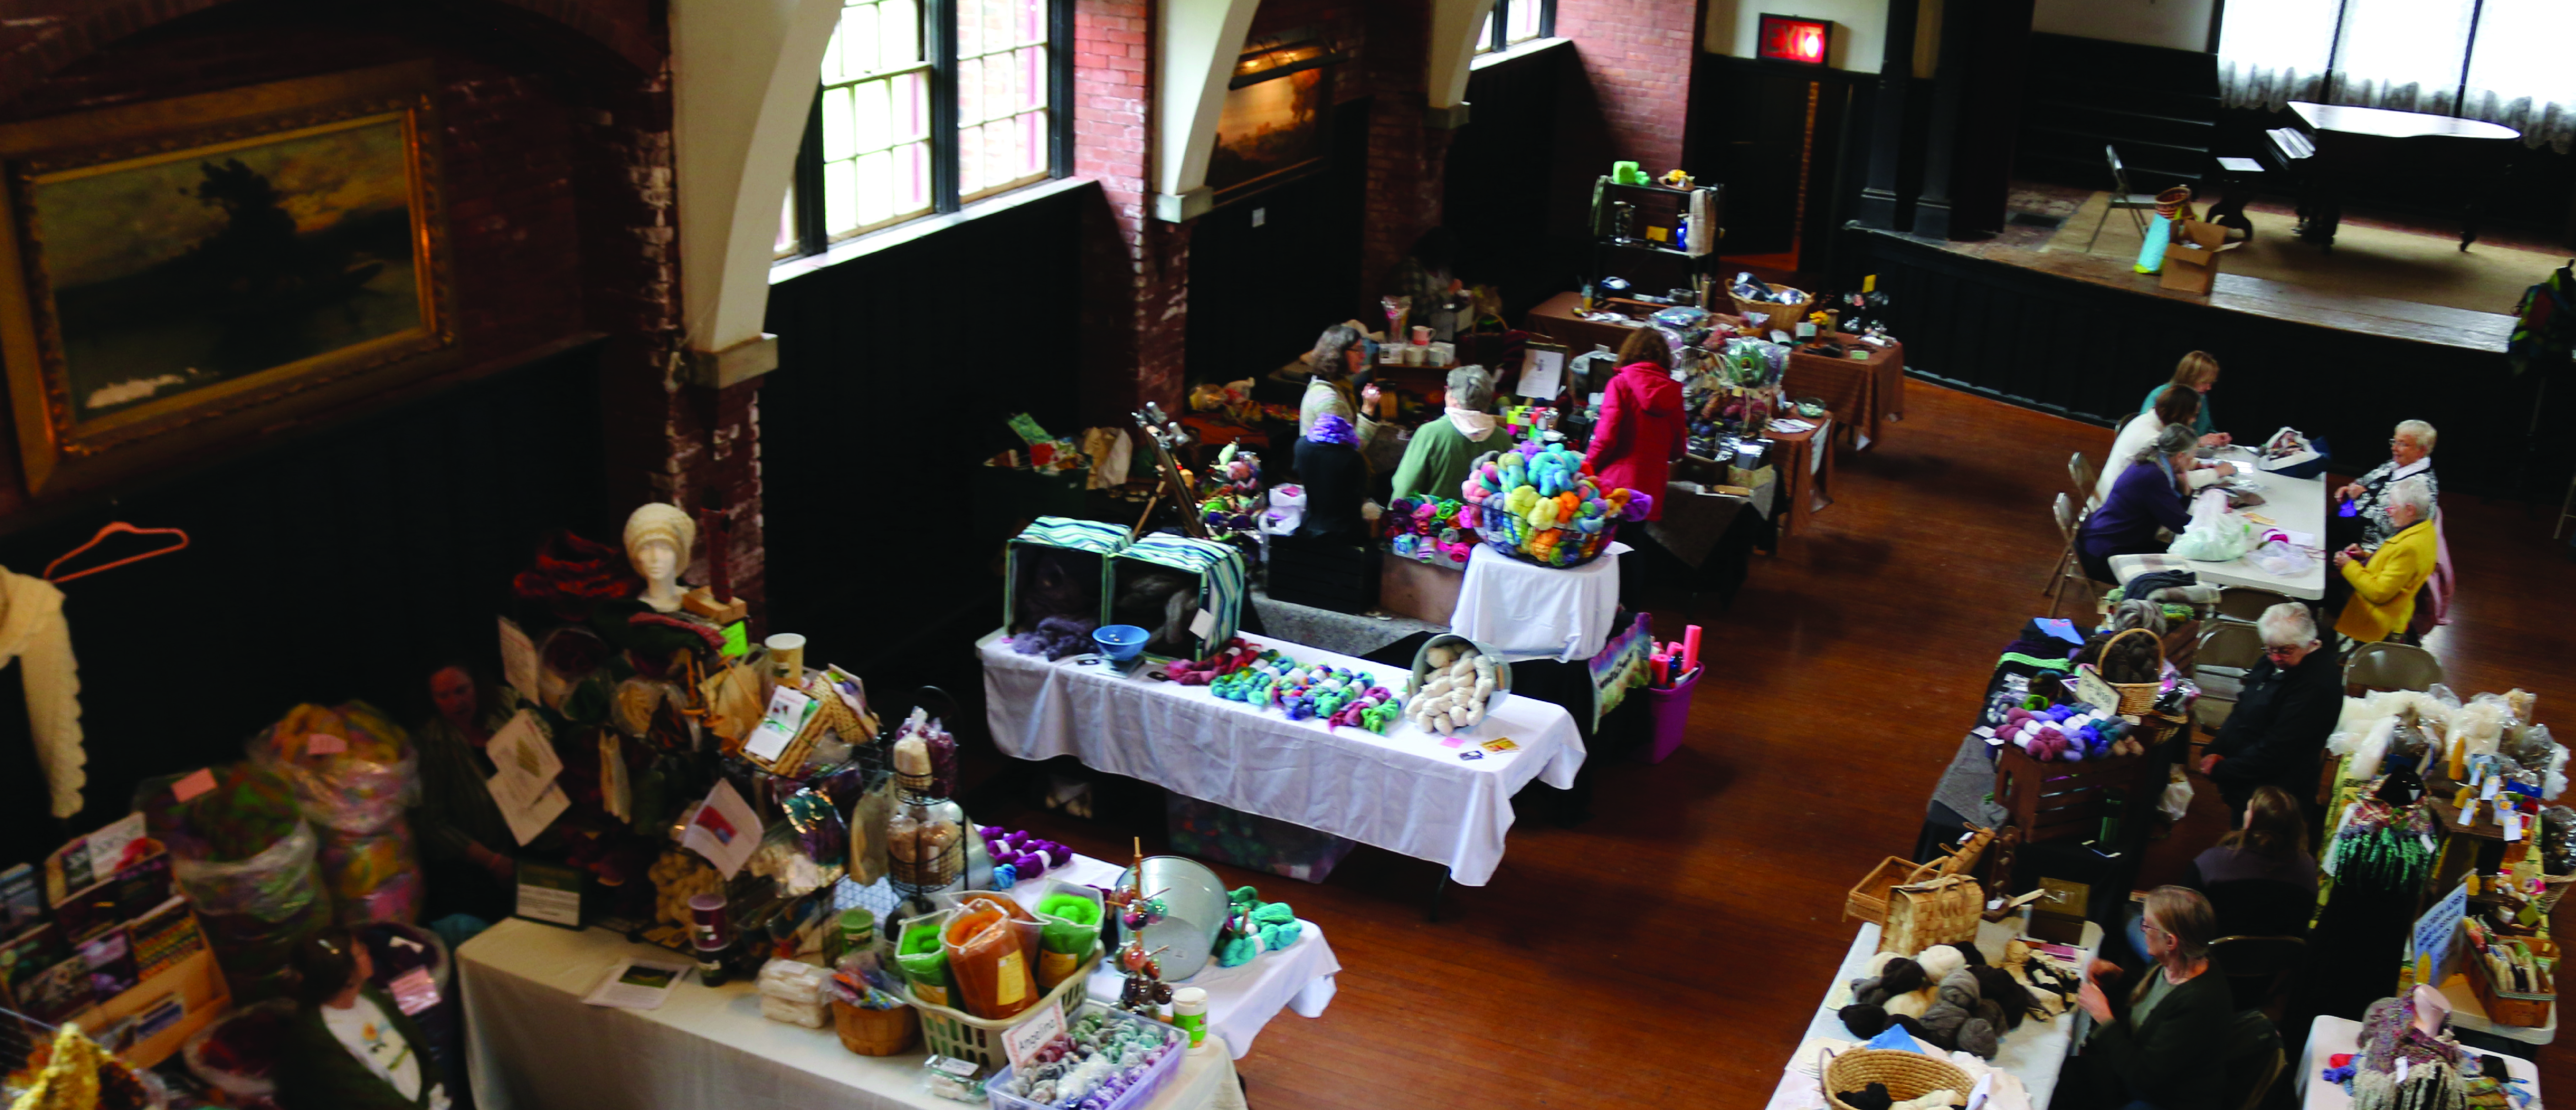 Fiber Flurry is on April 27 - Call for Hall of Artists Exhibitors is Open